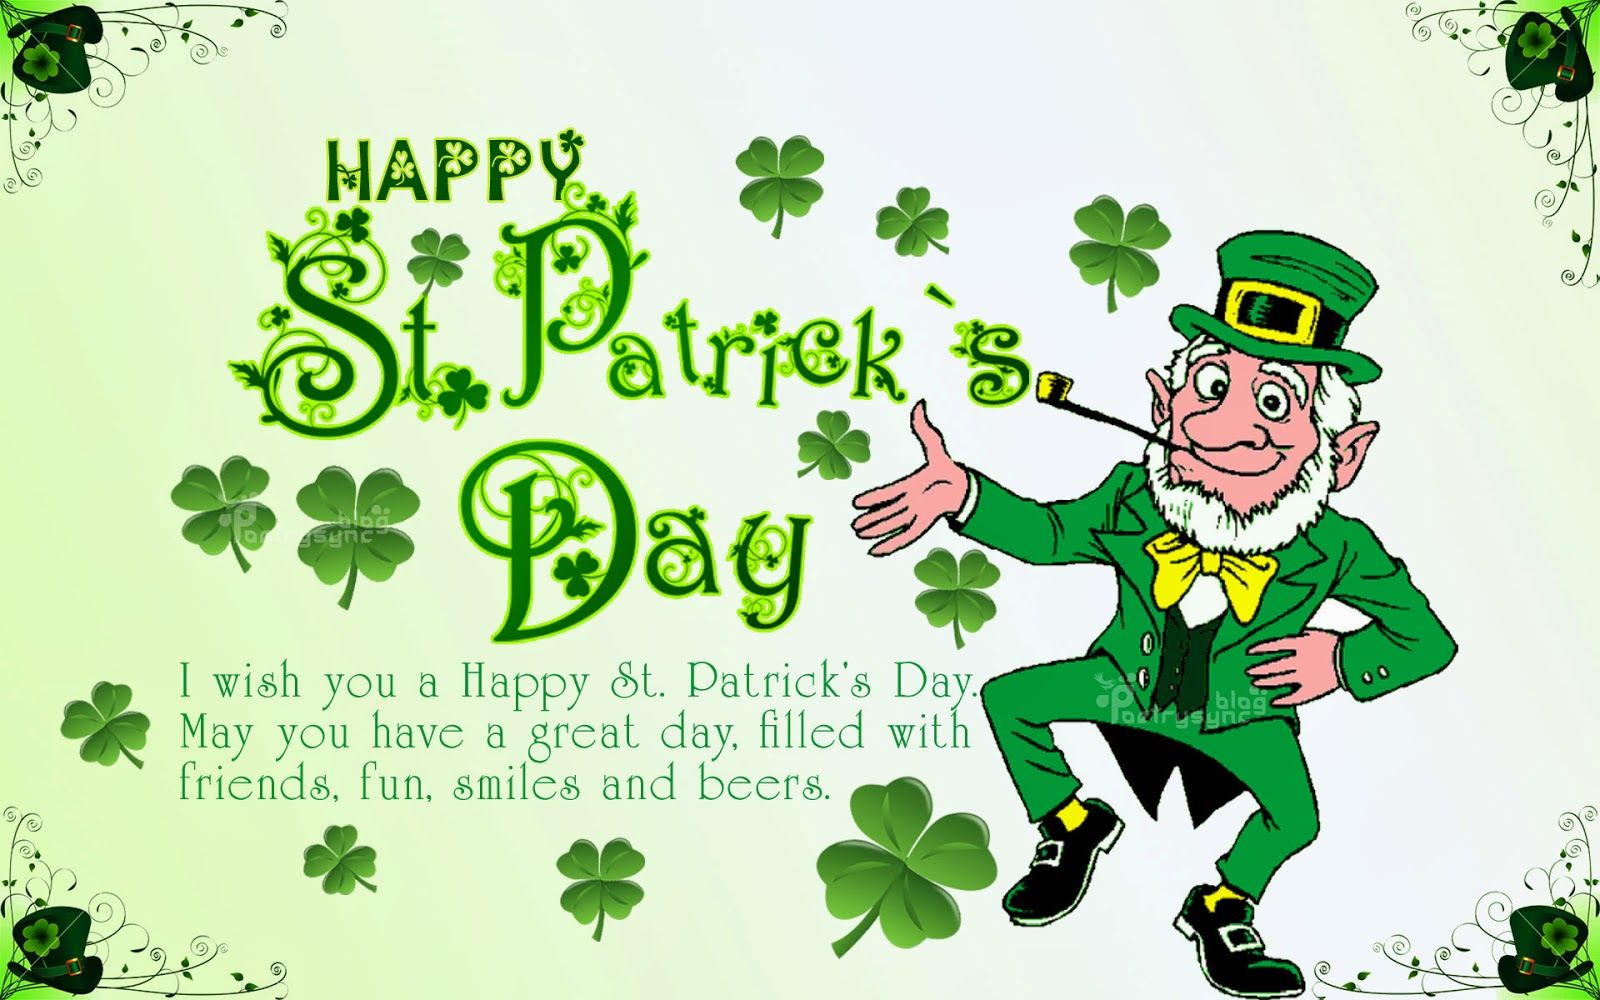 Happy saint patrick's day Greetings wishes Quotes